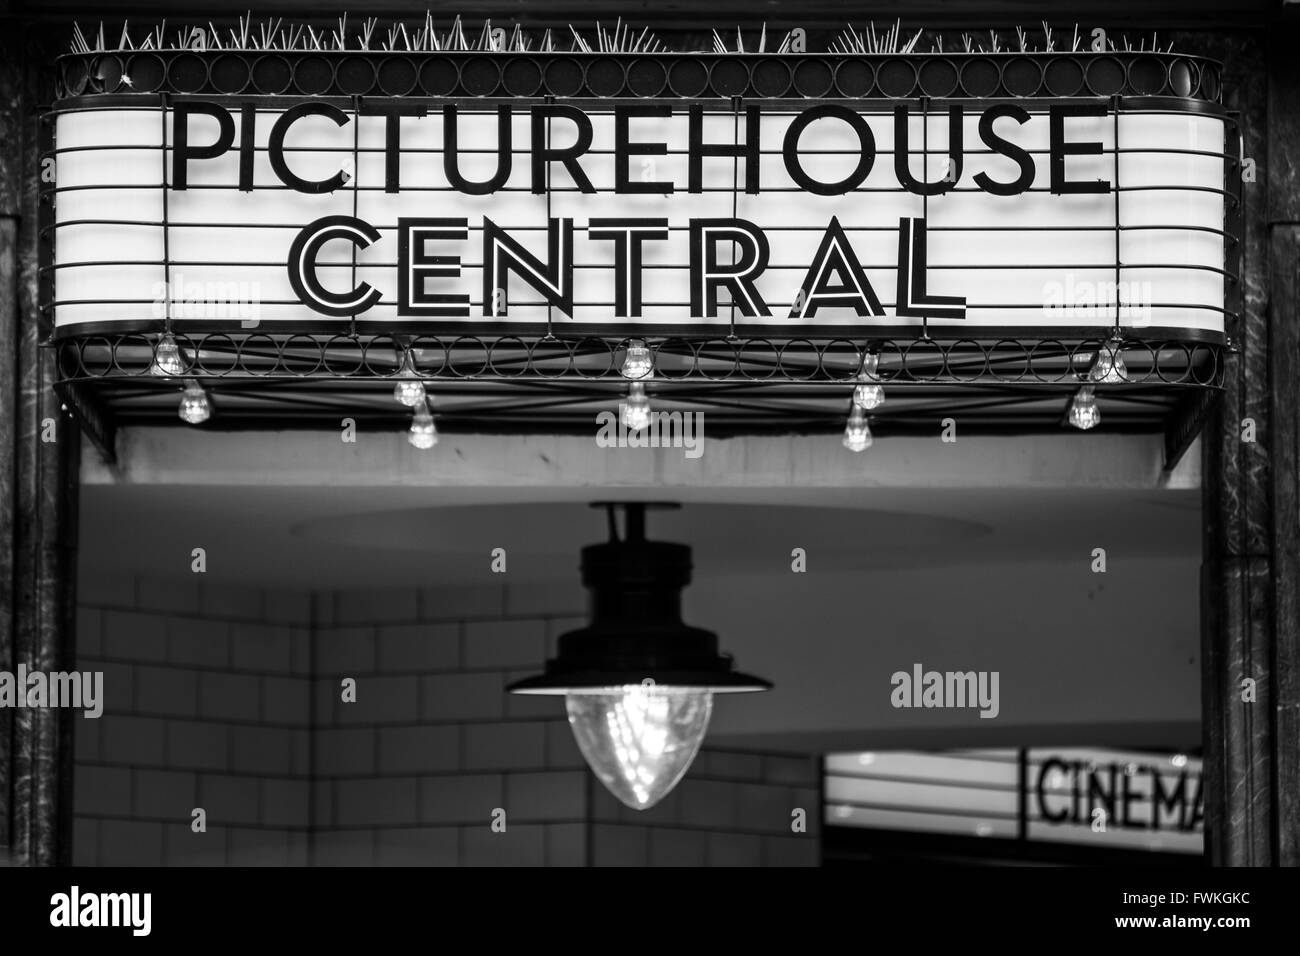 Picturehouse Central Cinema London Shaftesbury Avenue - Stock Image